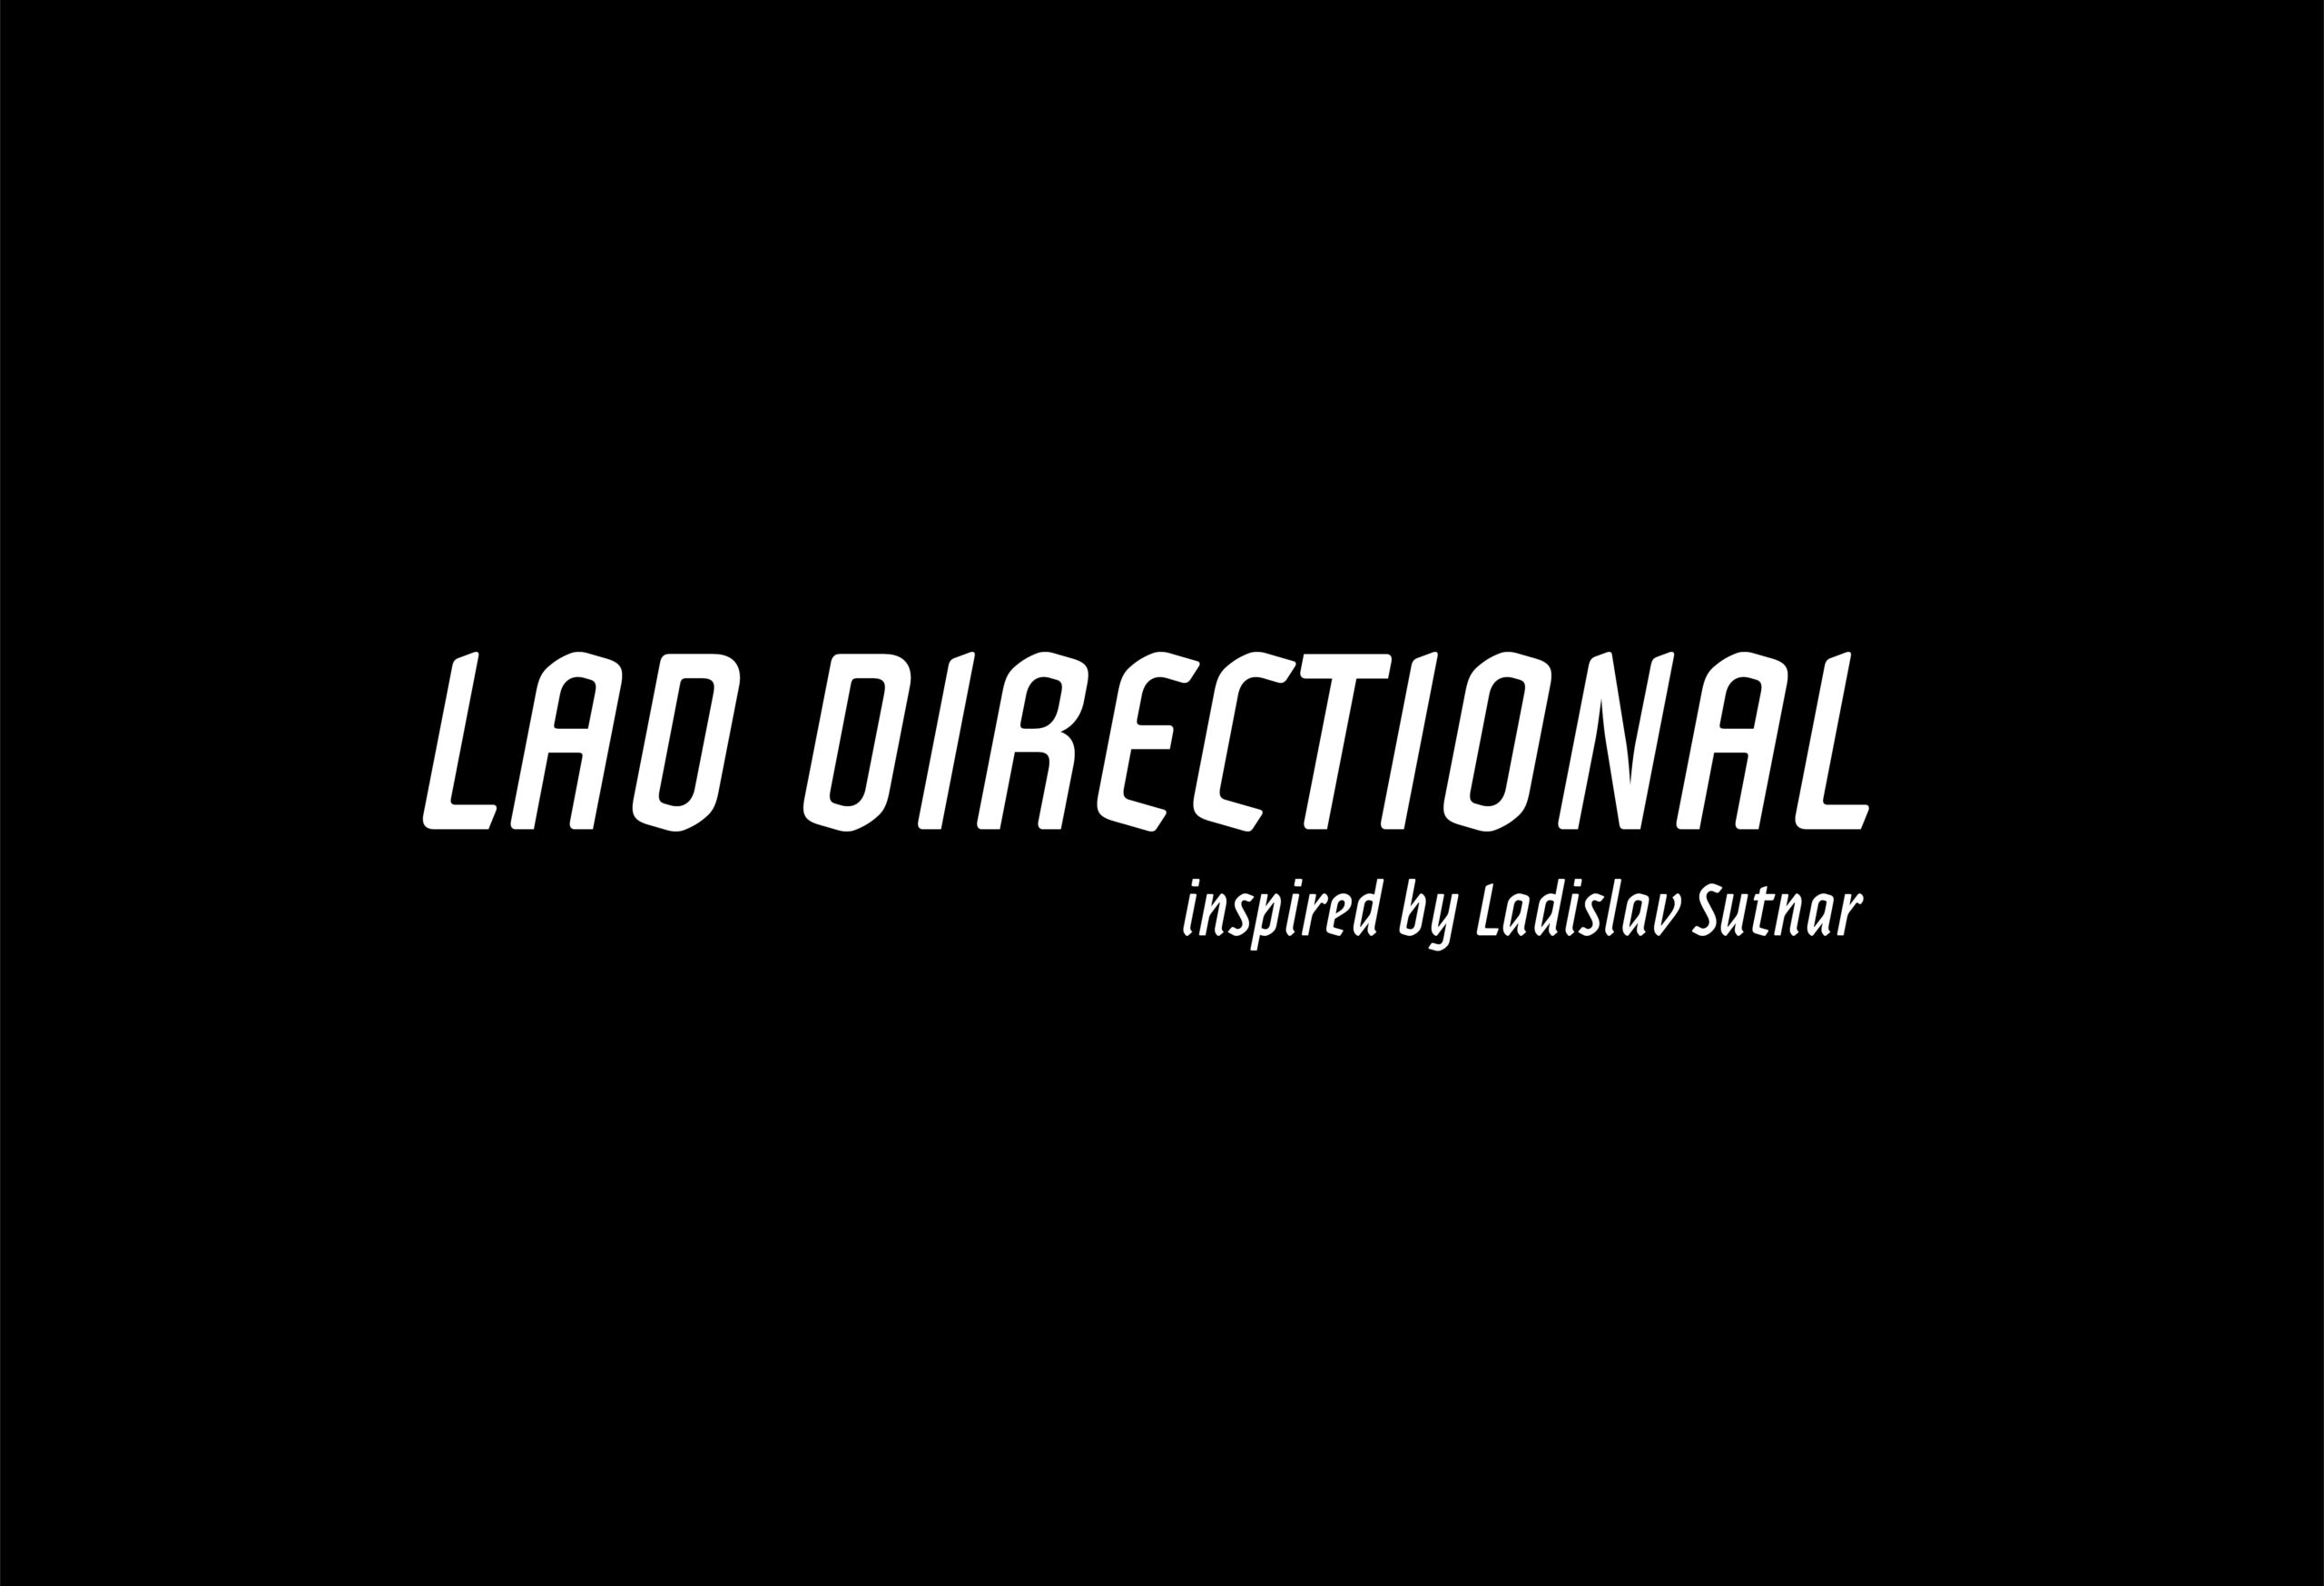 lad directional inspired by sutnar